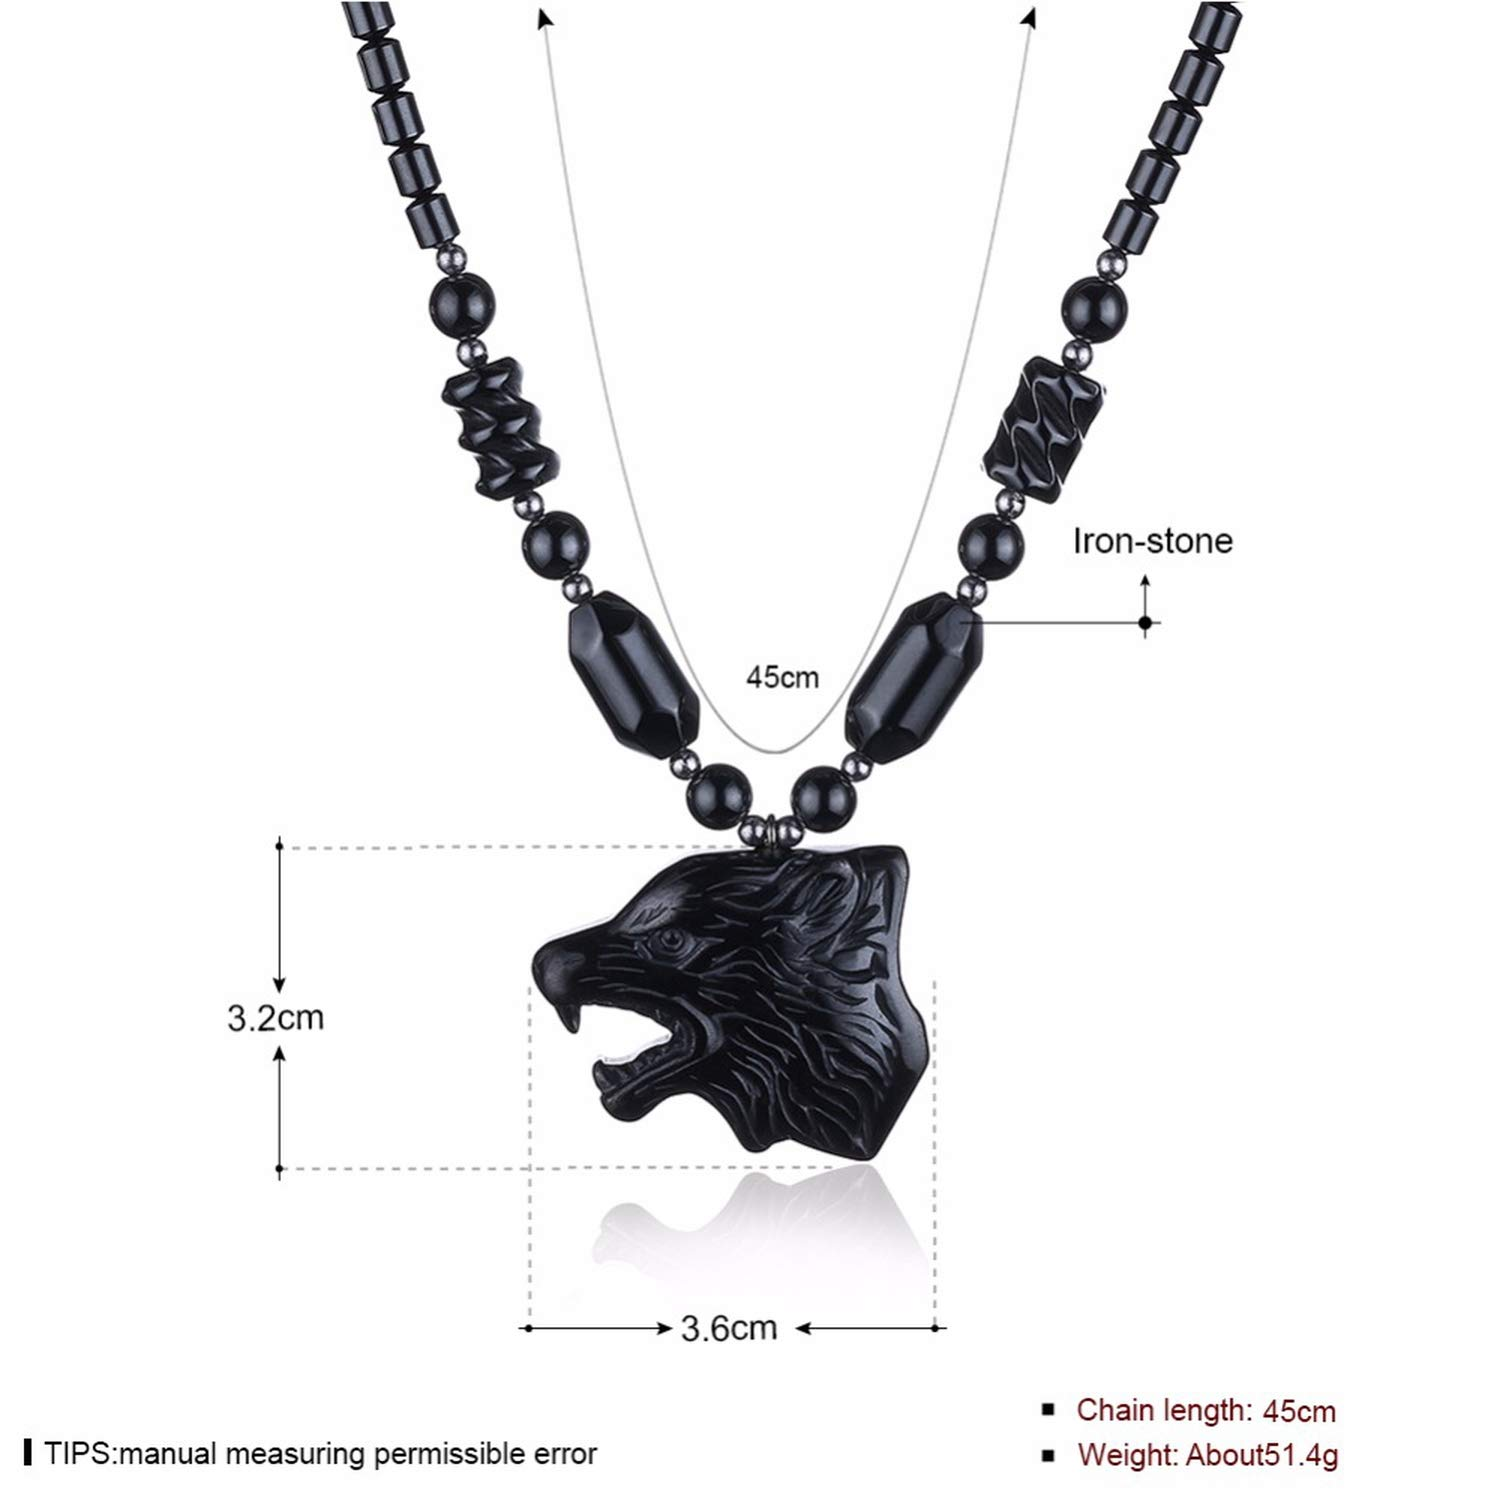 Beancan Vintage Necklaces /& Pendants for Women Black Iron-Stone Animal Jewelry Choker Chains Necklace Collares Mujer